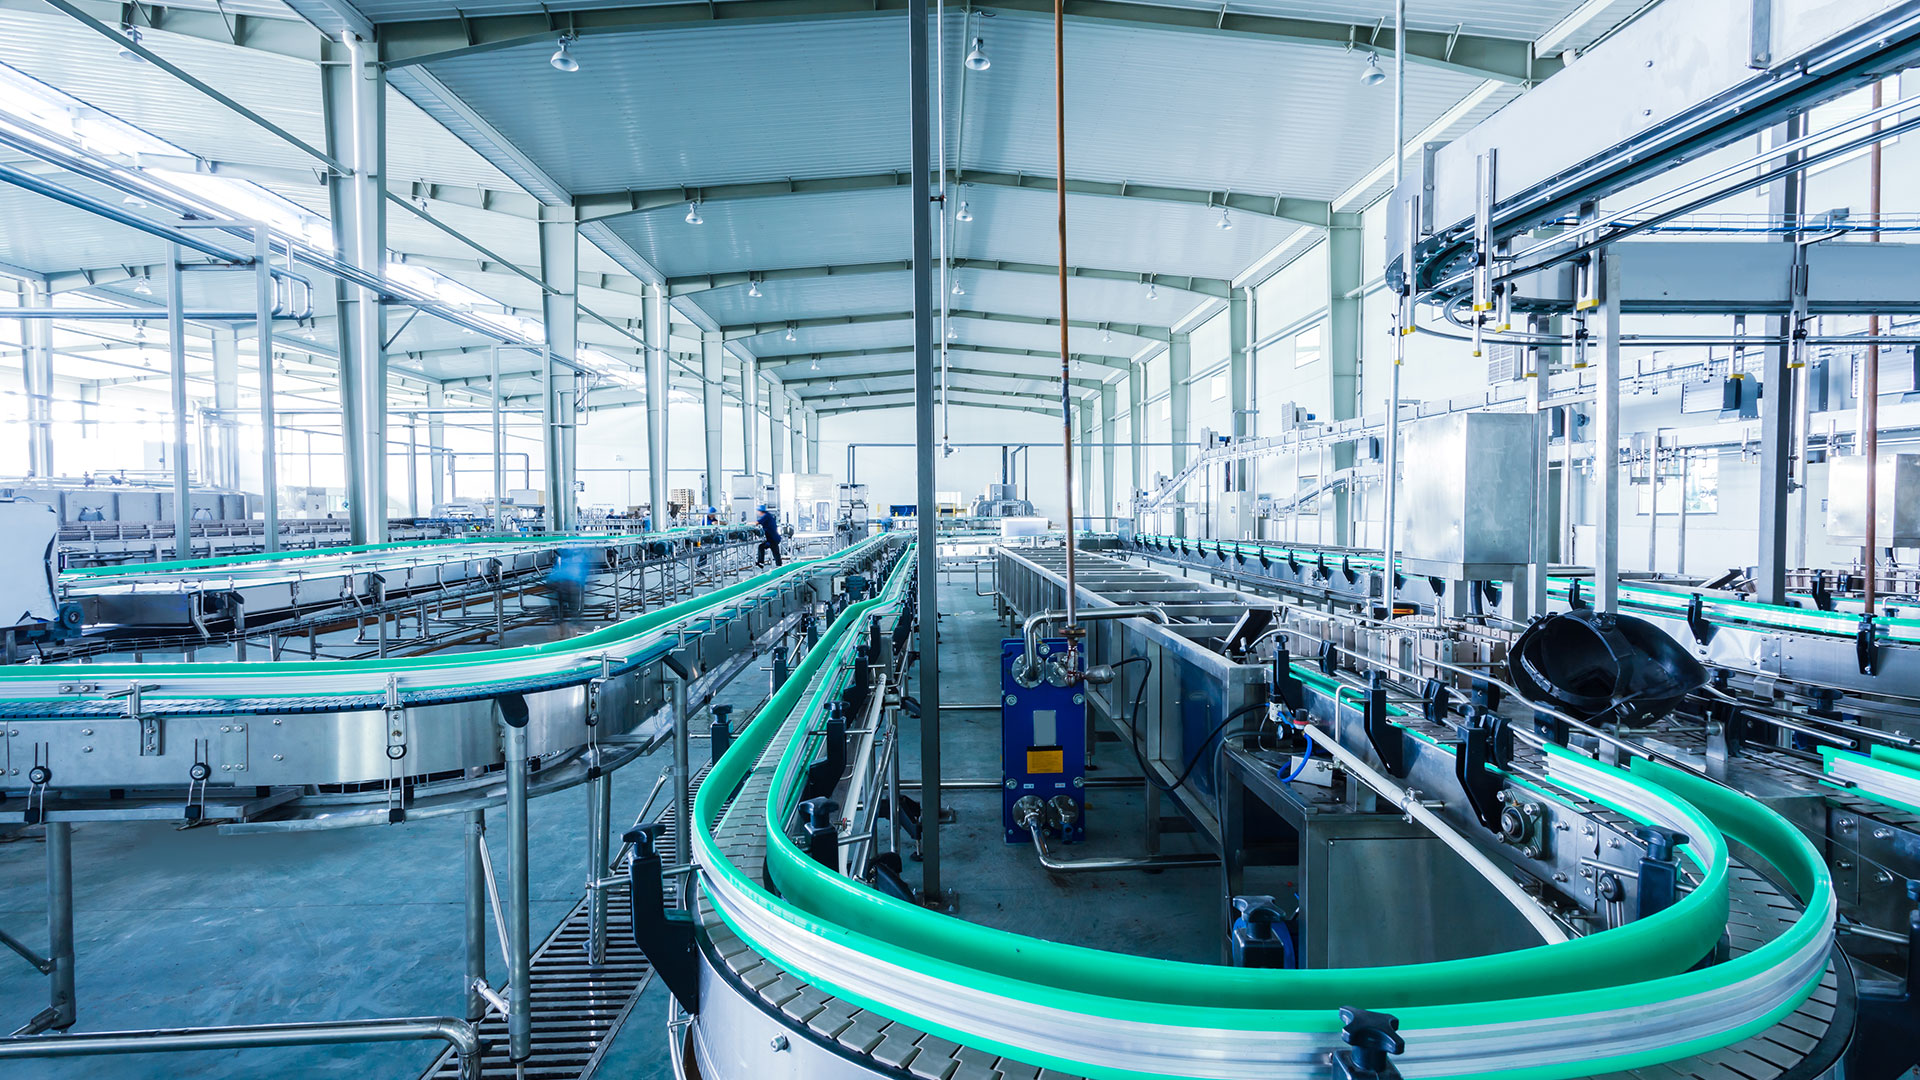 Blog: Insights Into Connecting Industrial IoT Assets